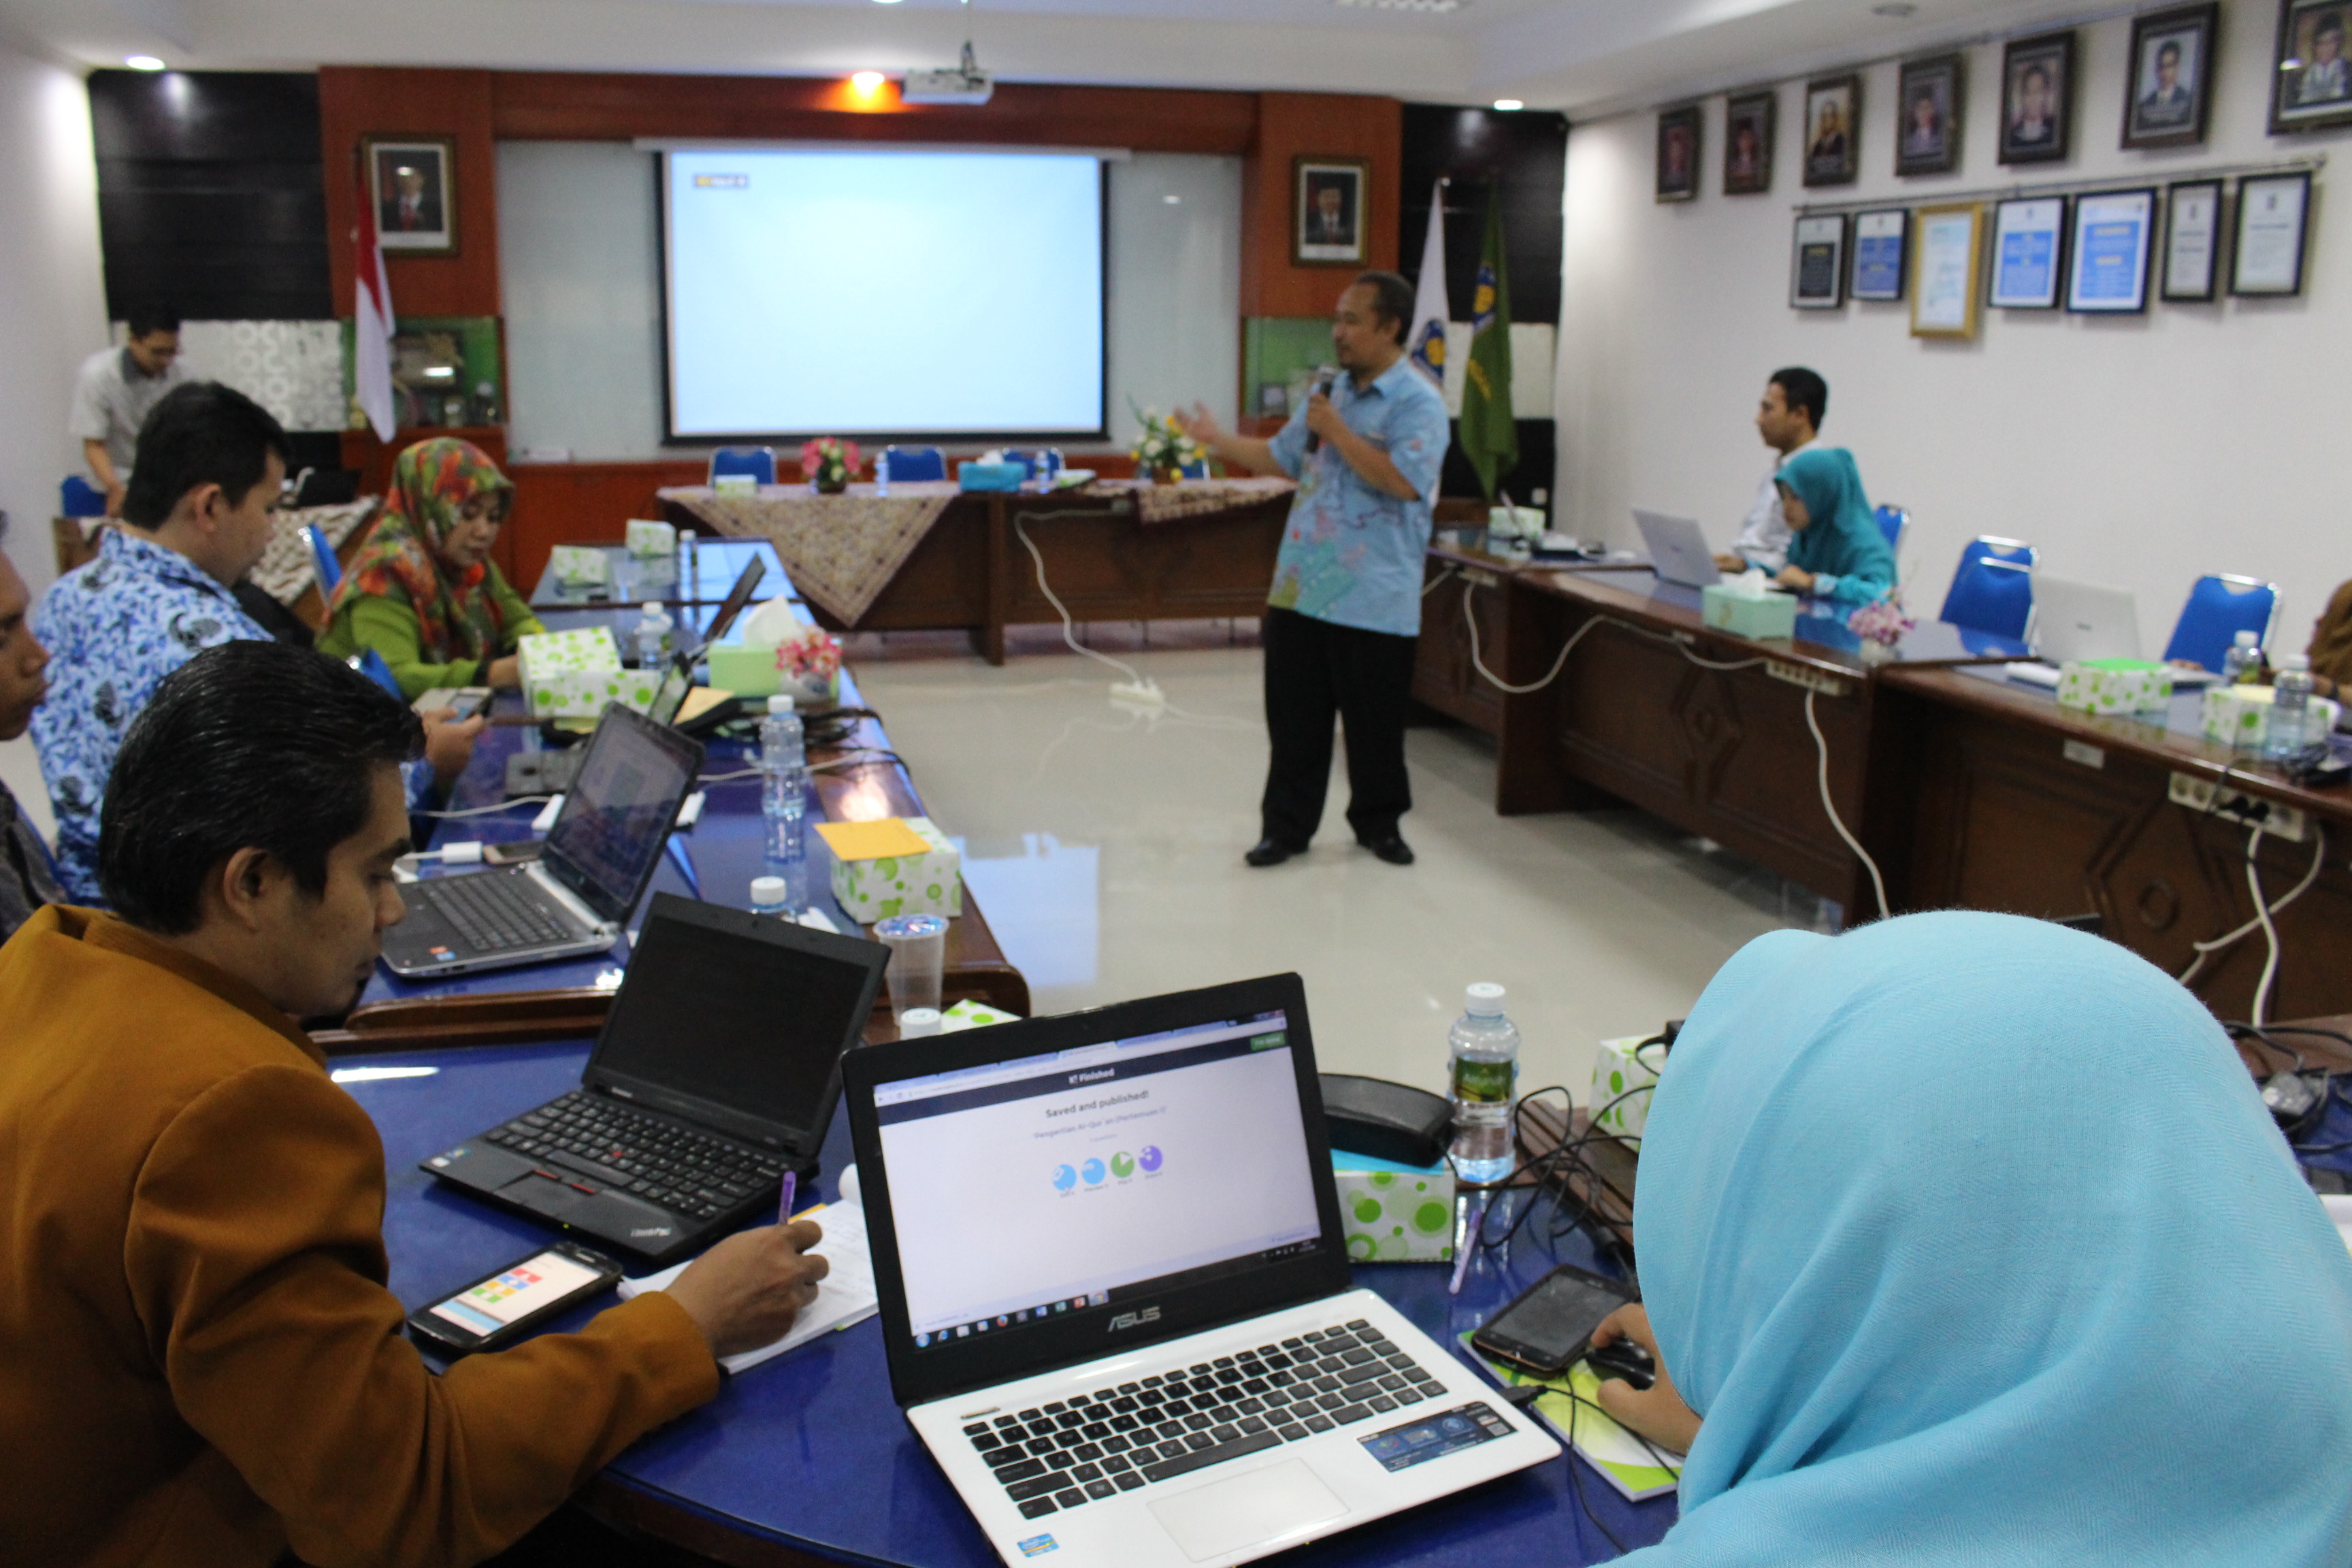 PAI adakan Training IT Blended Learning untuk Guru Madrasah